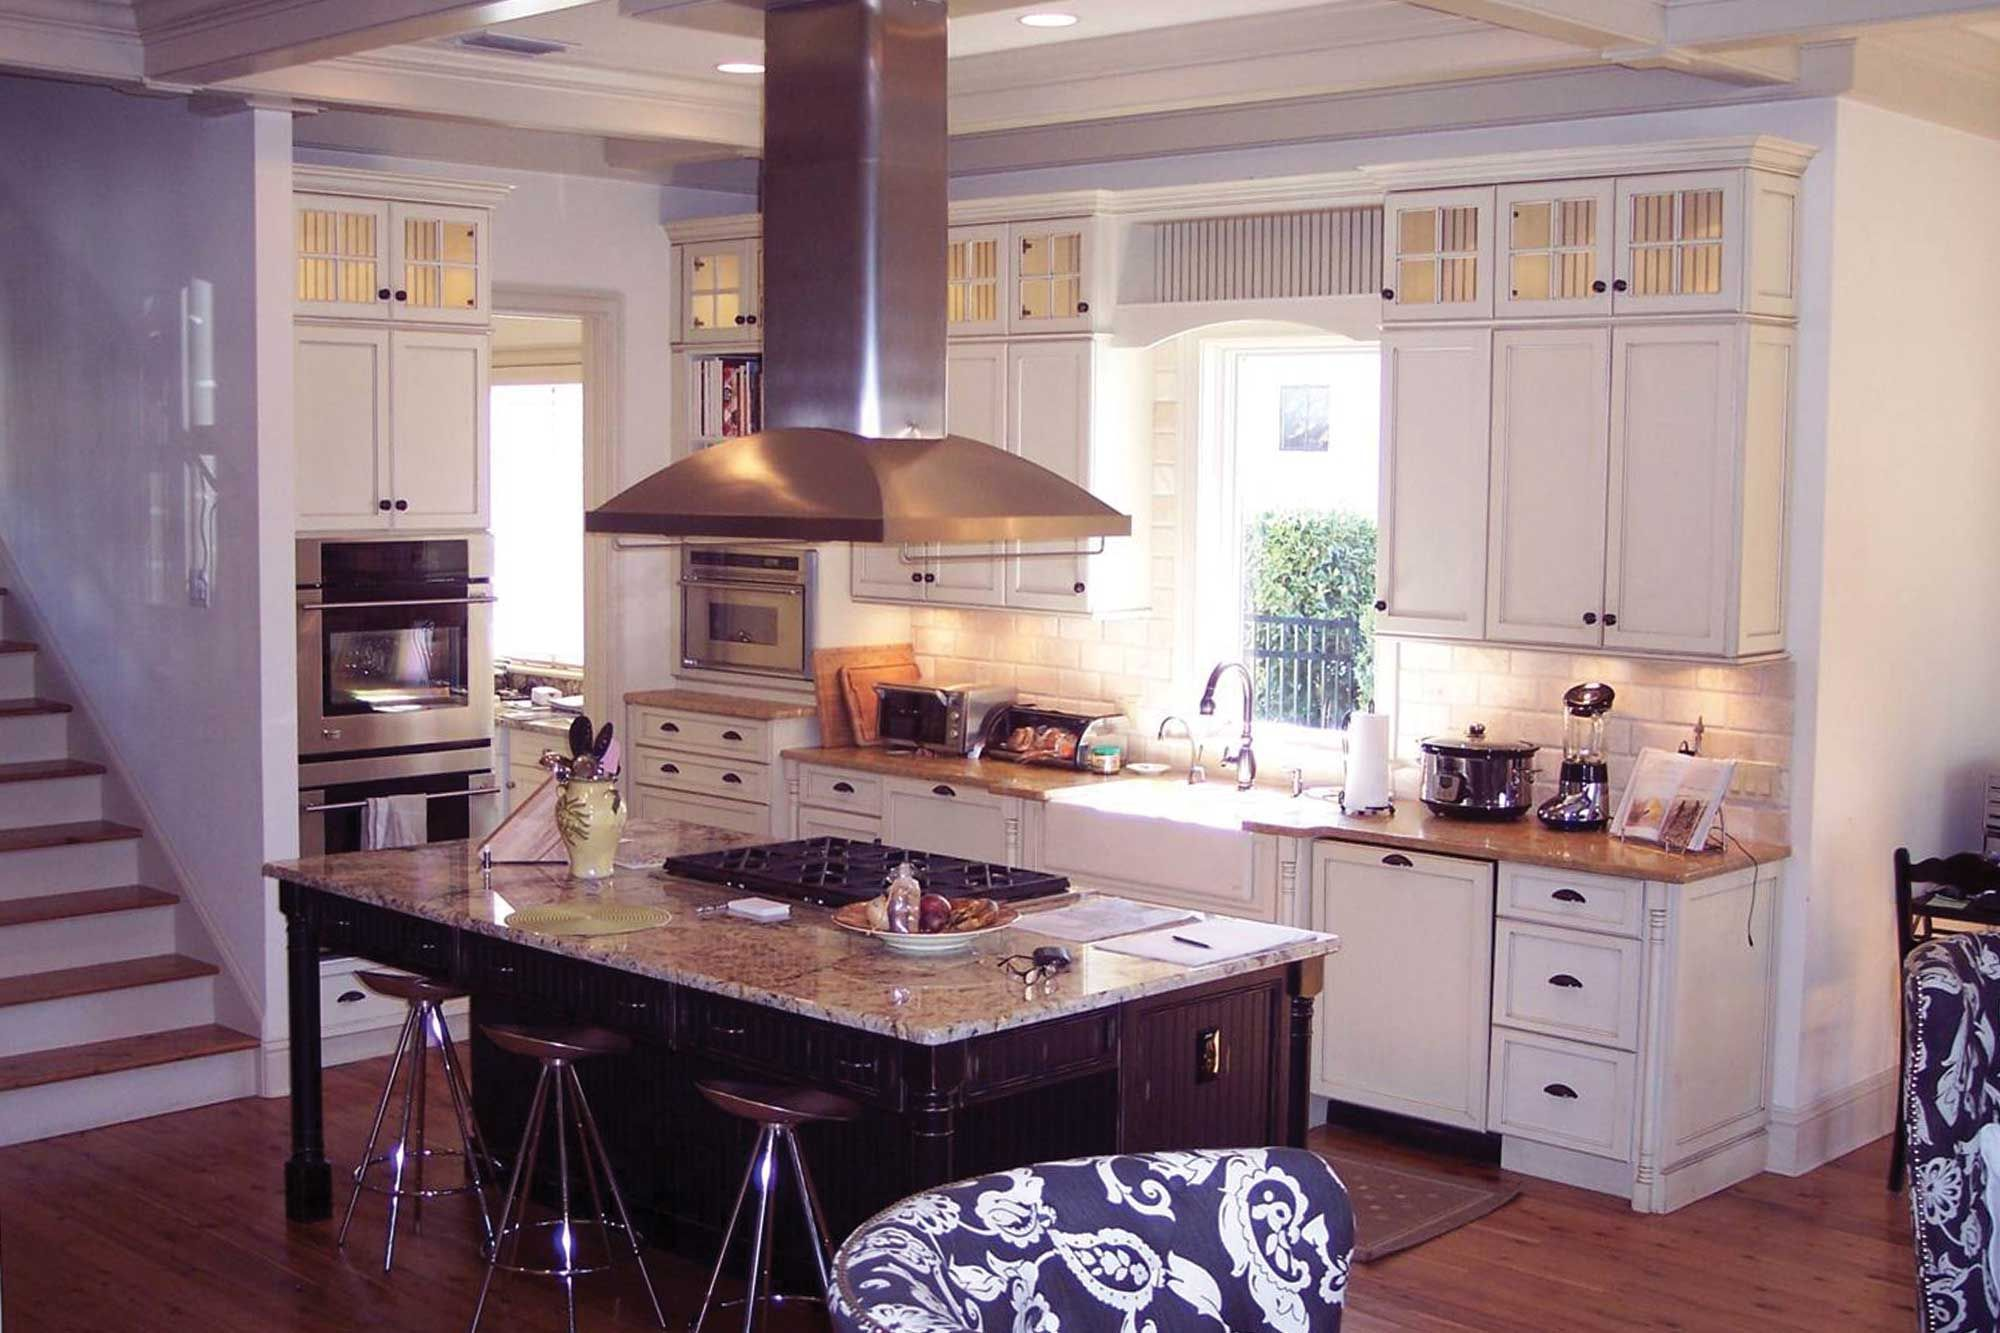 Executive Cabinetry Custom Eco Friendly Cabinets Kitchen Bath Office Executive Cabinetry Crafted Kitchen Bath A Kitchen Kitchen Cabinets Cabinetry